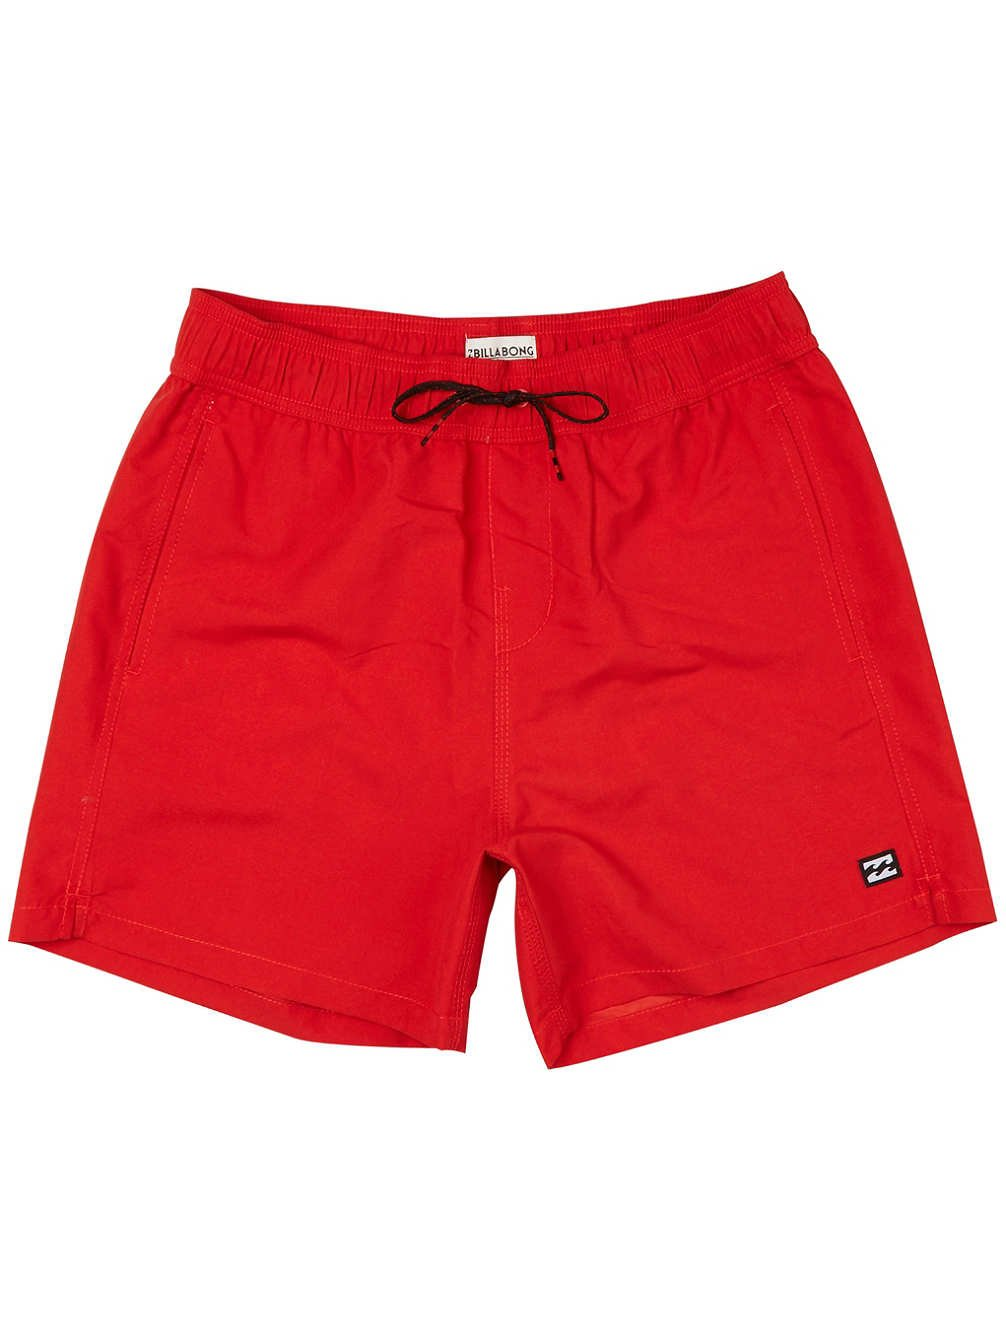 TALLA L. BILLABONG All Day LB 16, Pantalones Cortos Playa para Hombre